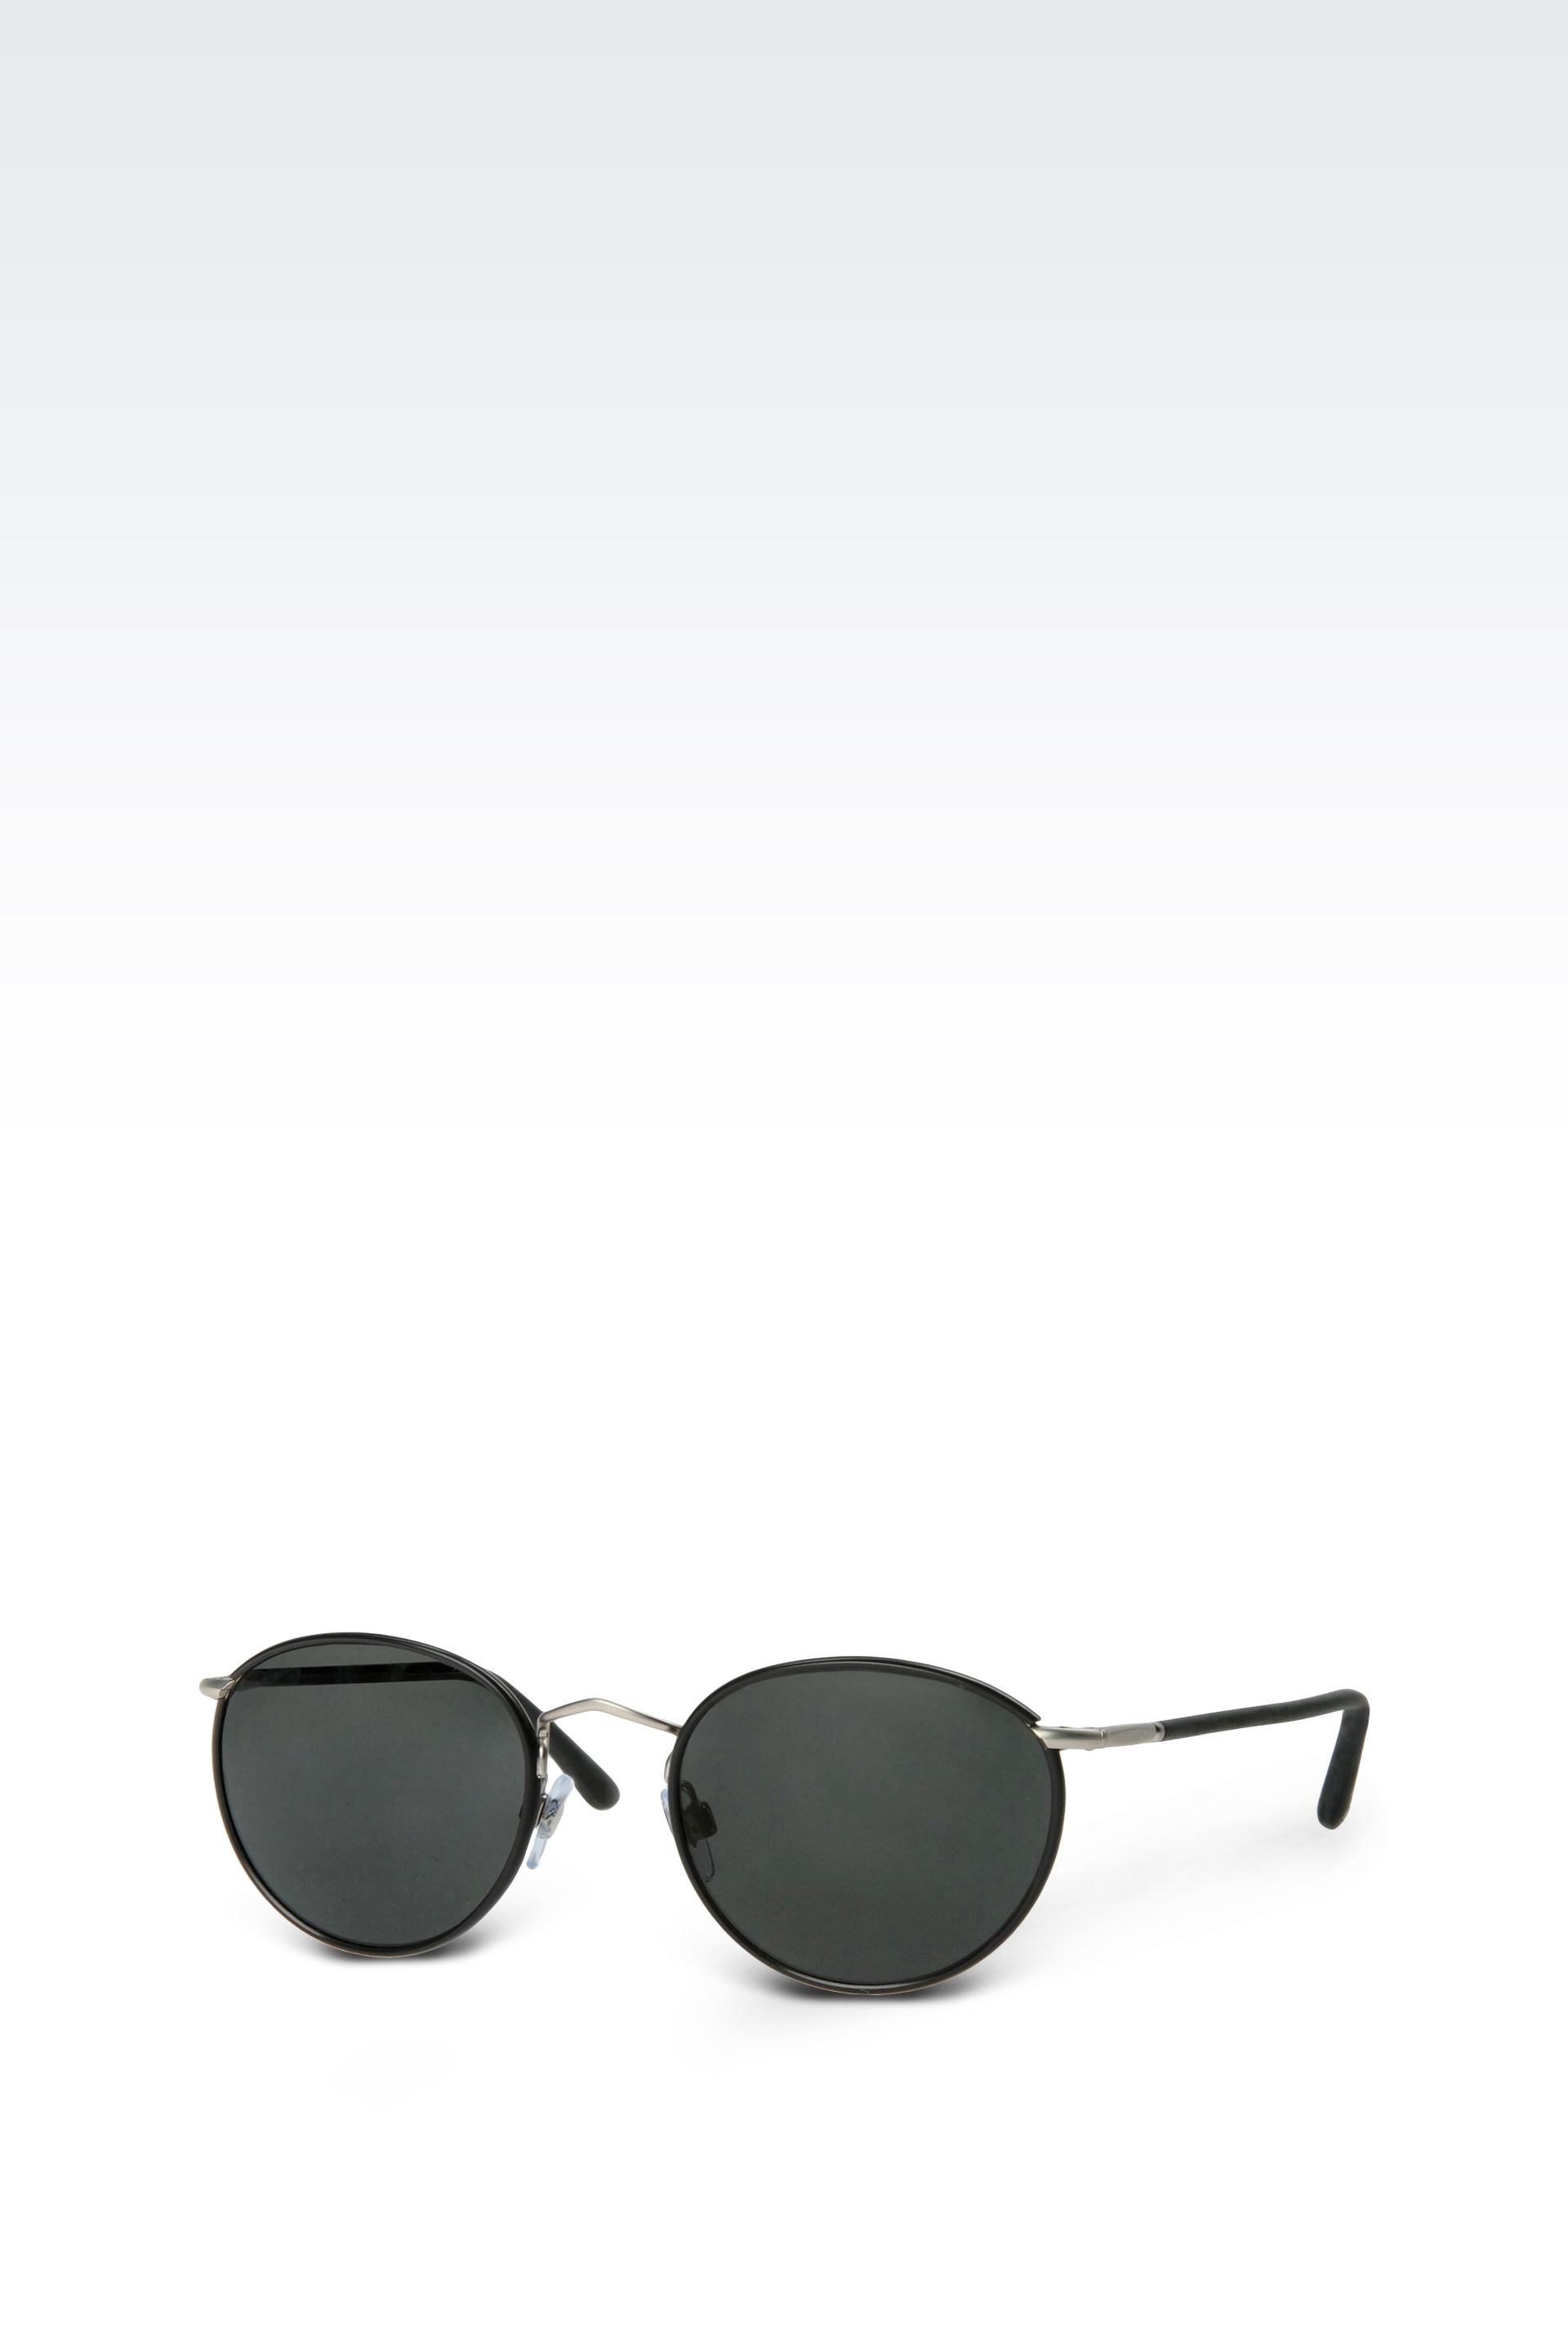 Giorgio armani Sunglasses From The Frames Of Life ...